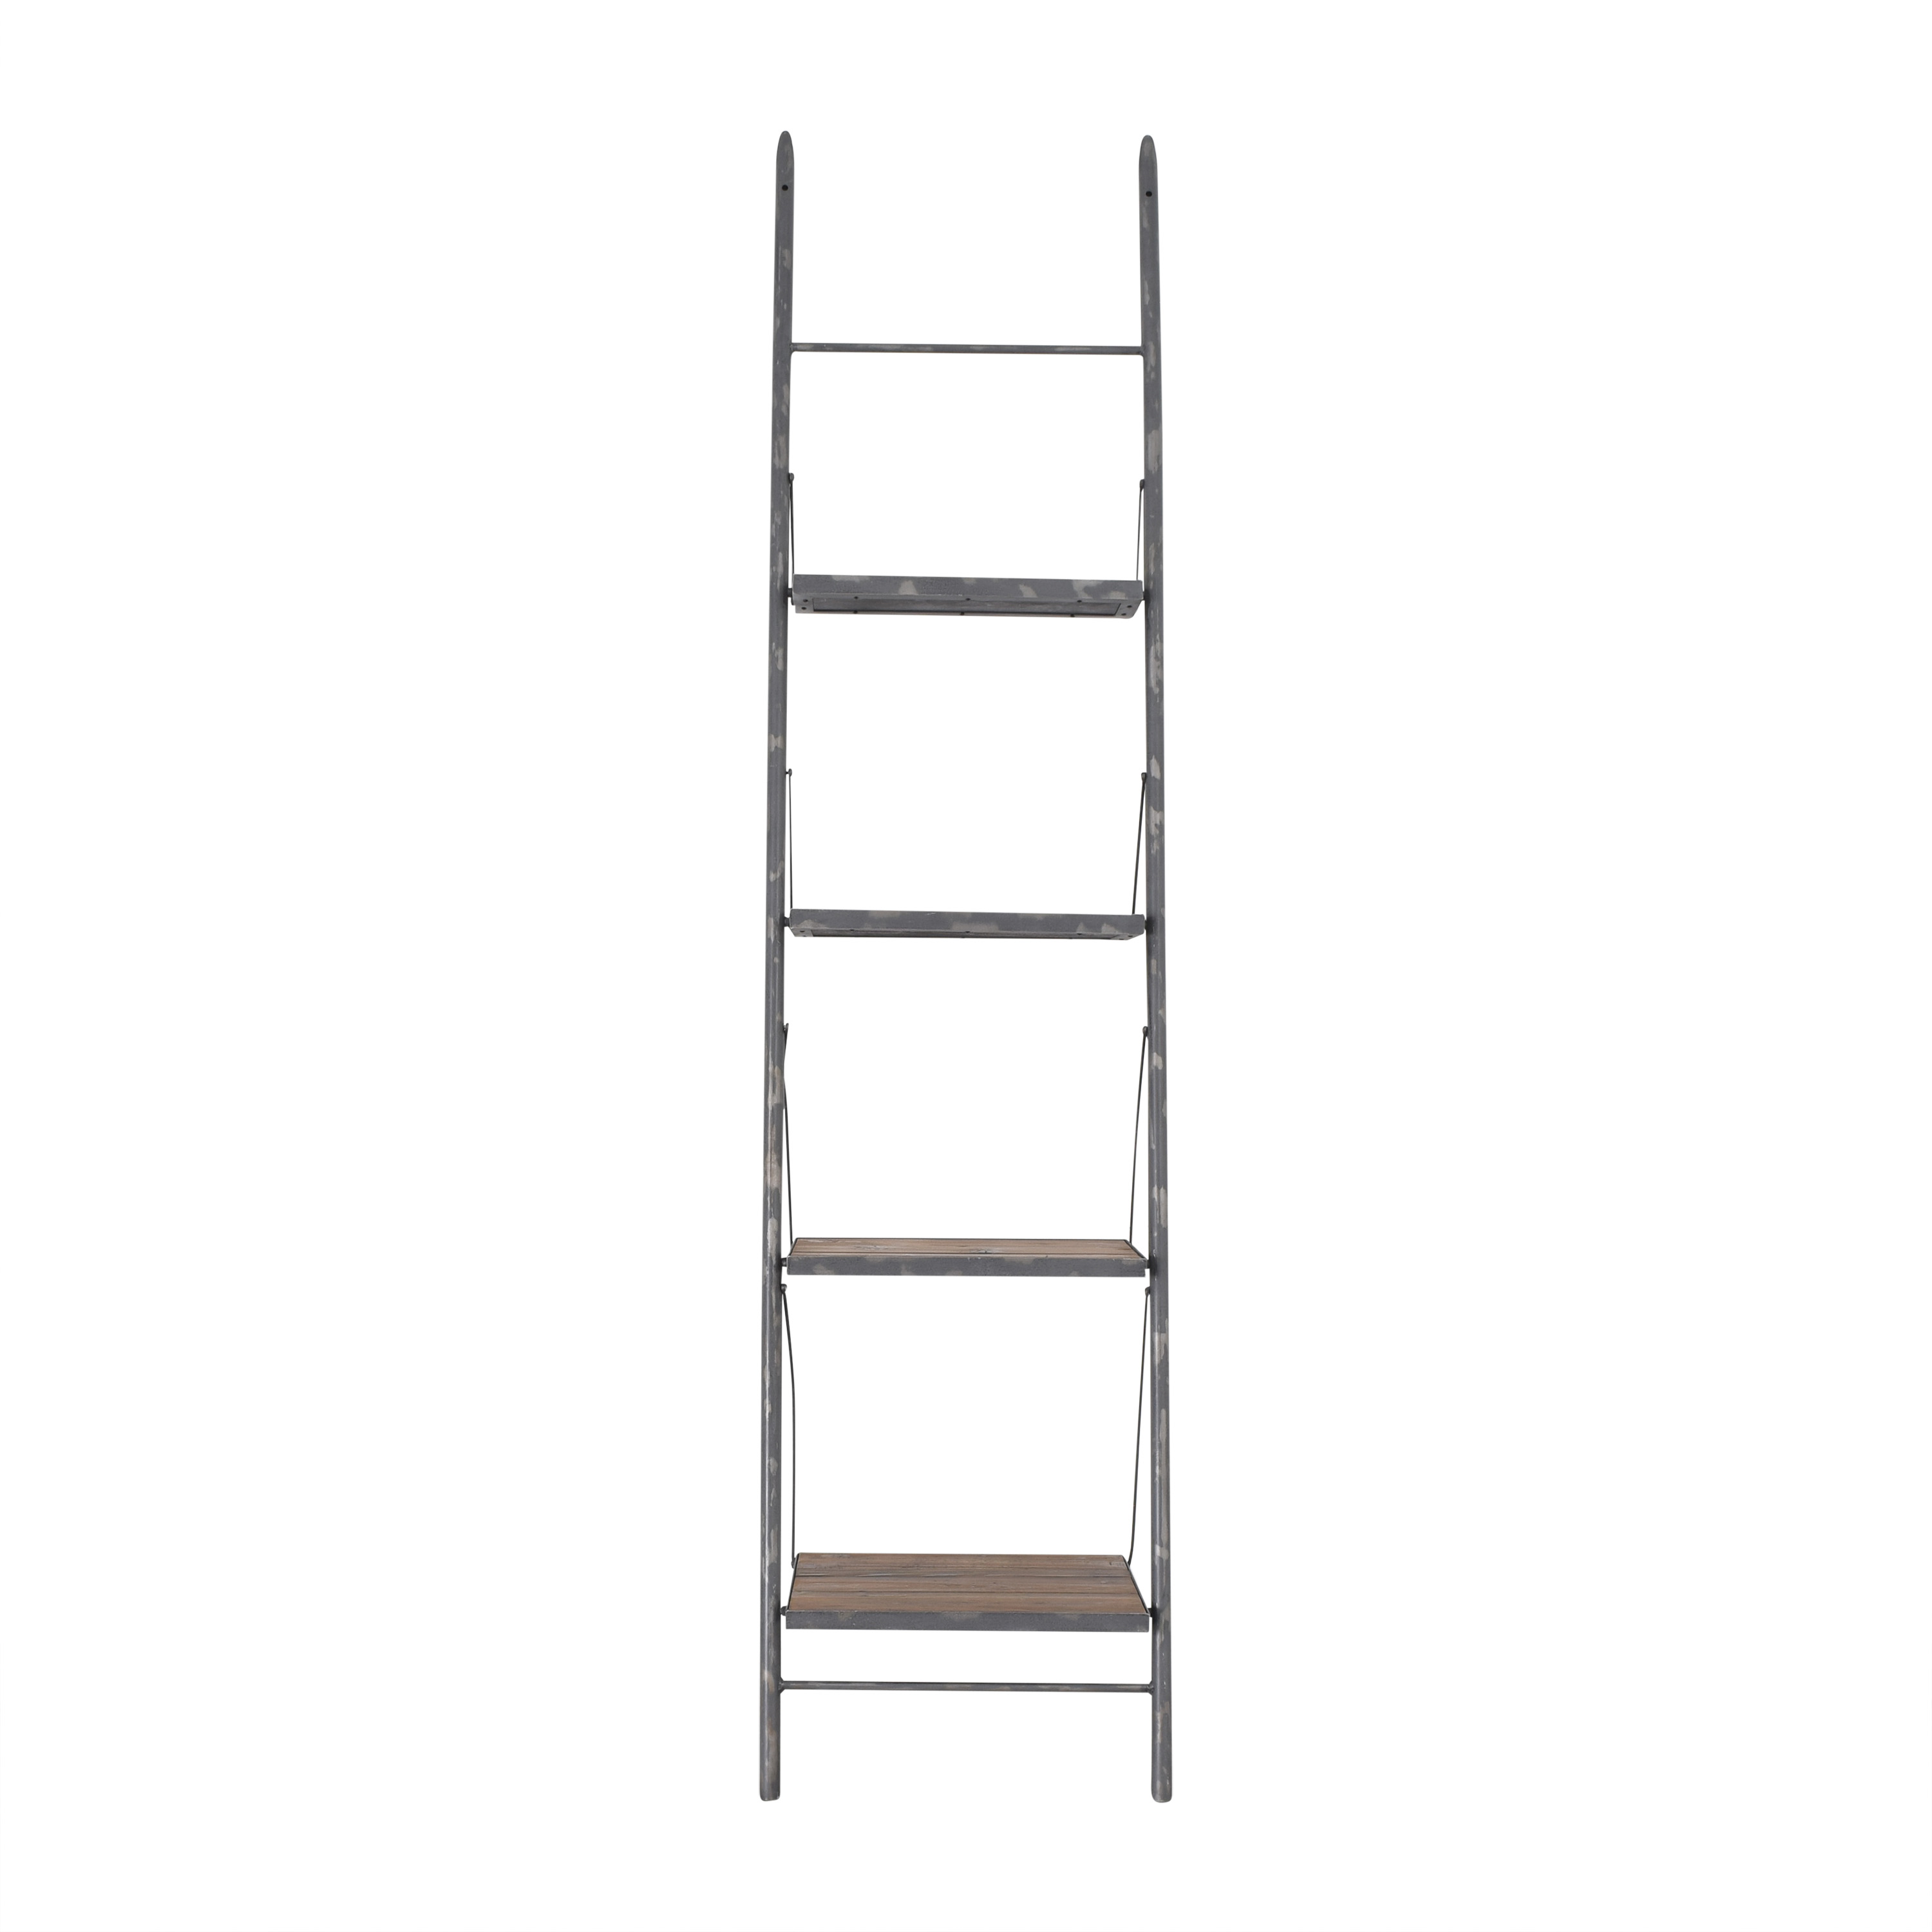 Design MIX Furniture Design MIX Furniture Leaning Ladder Shelf discount